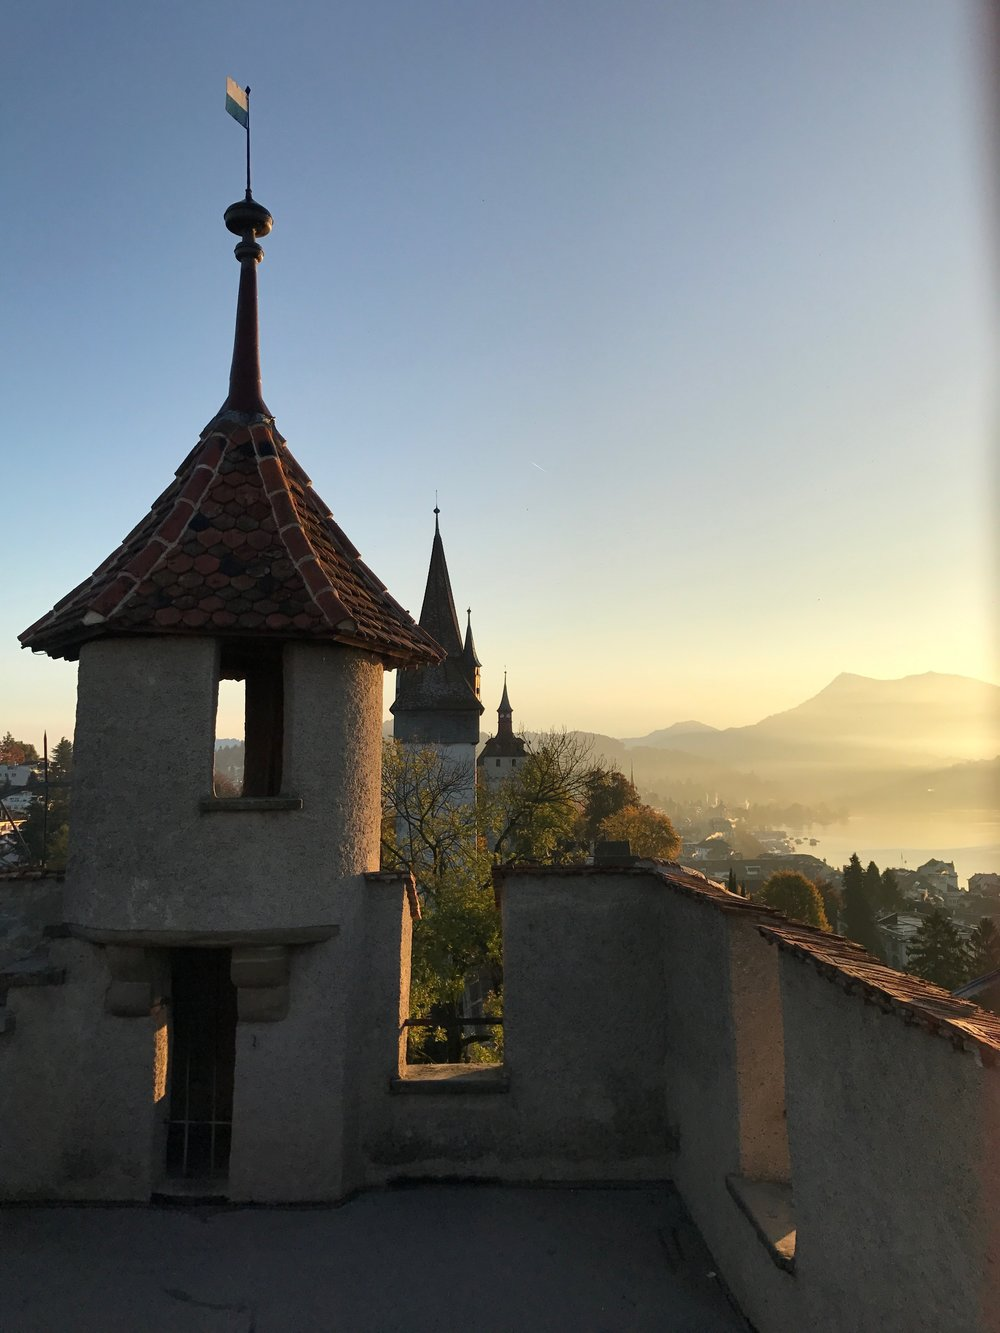 Morning views from the castle